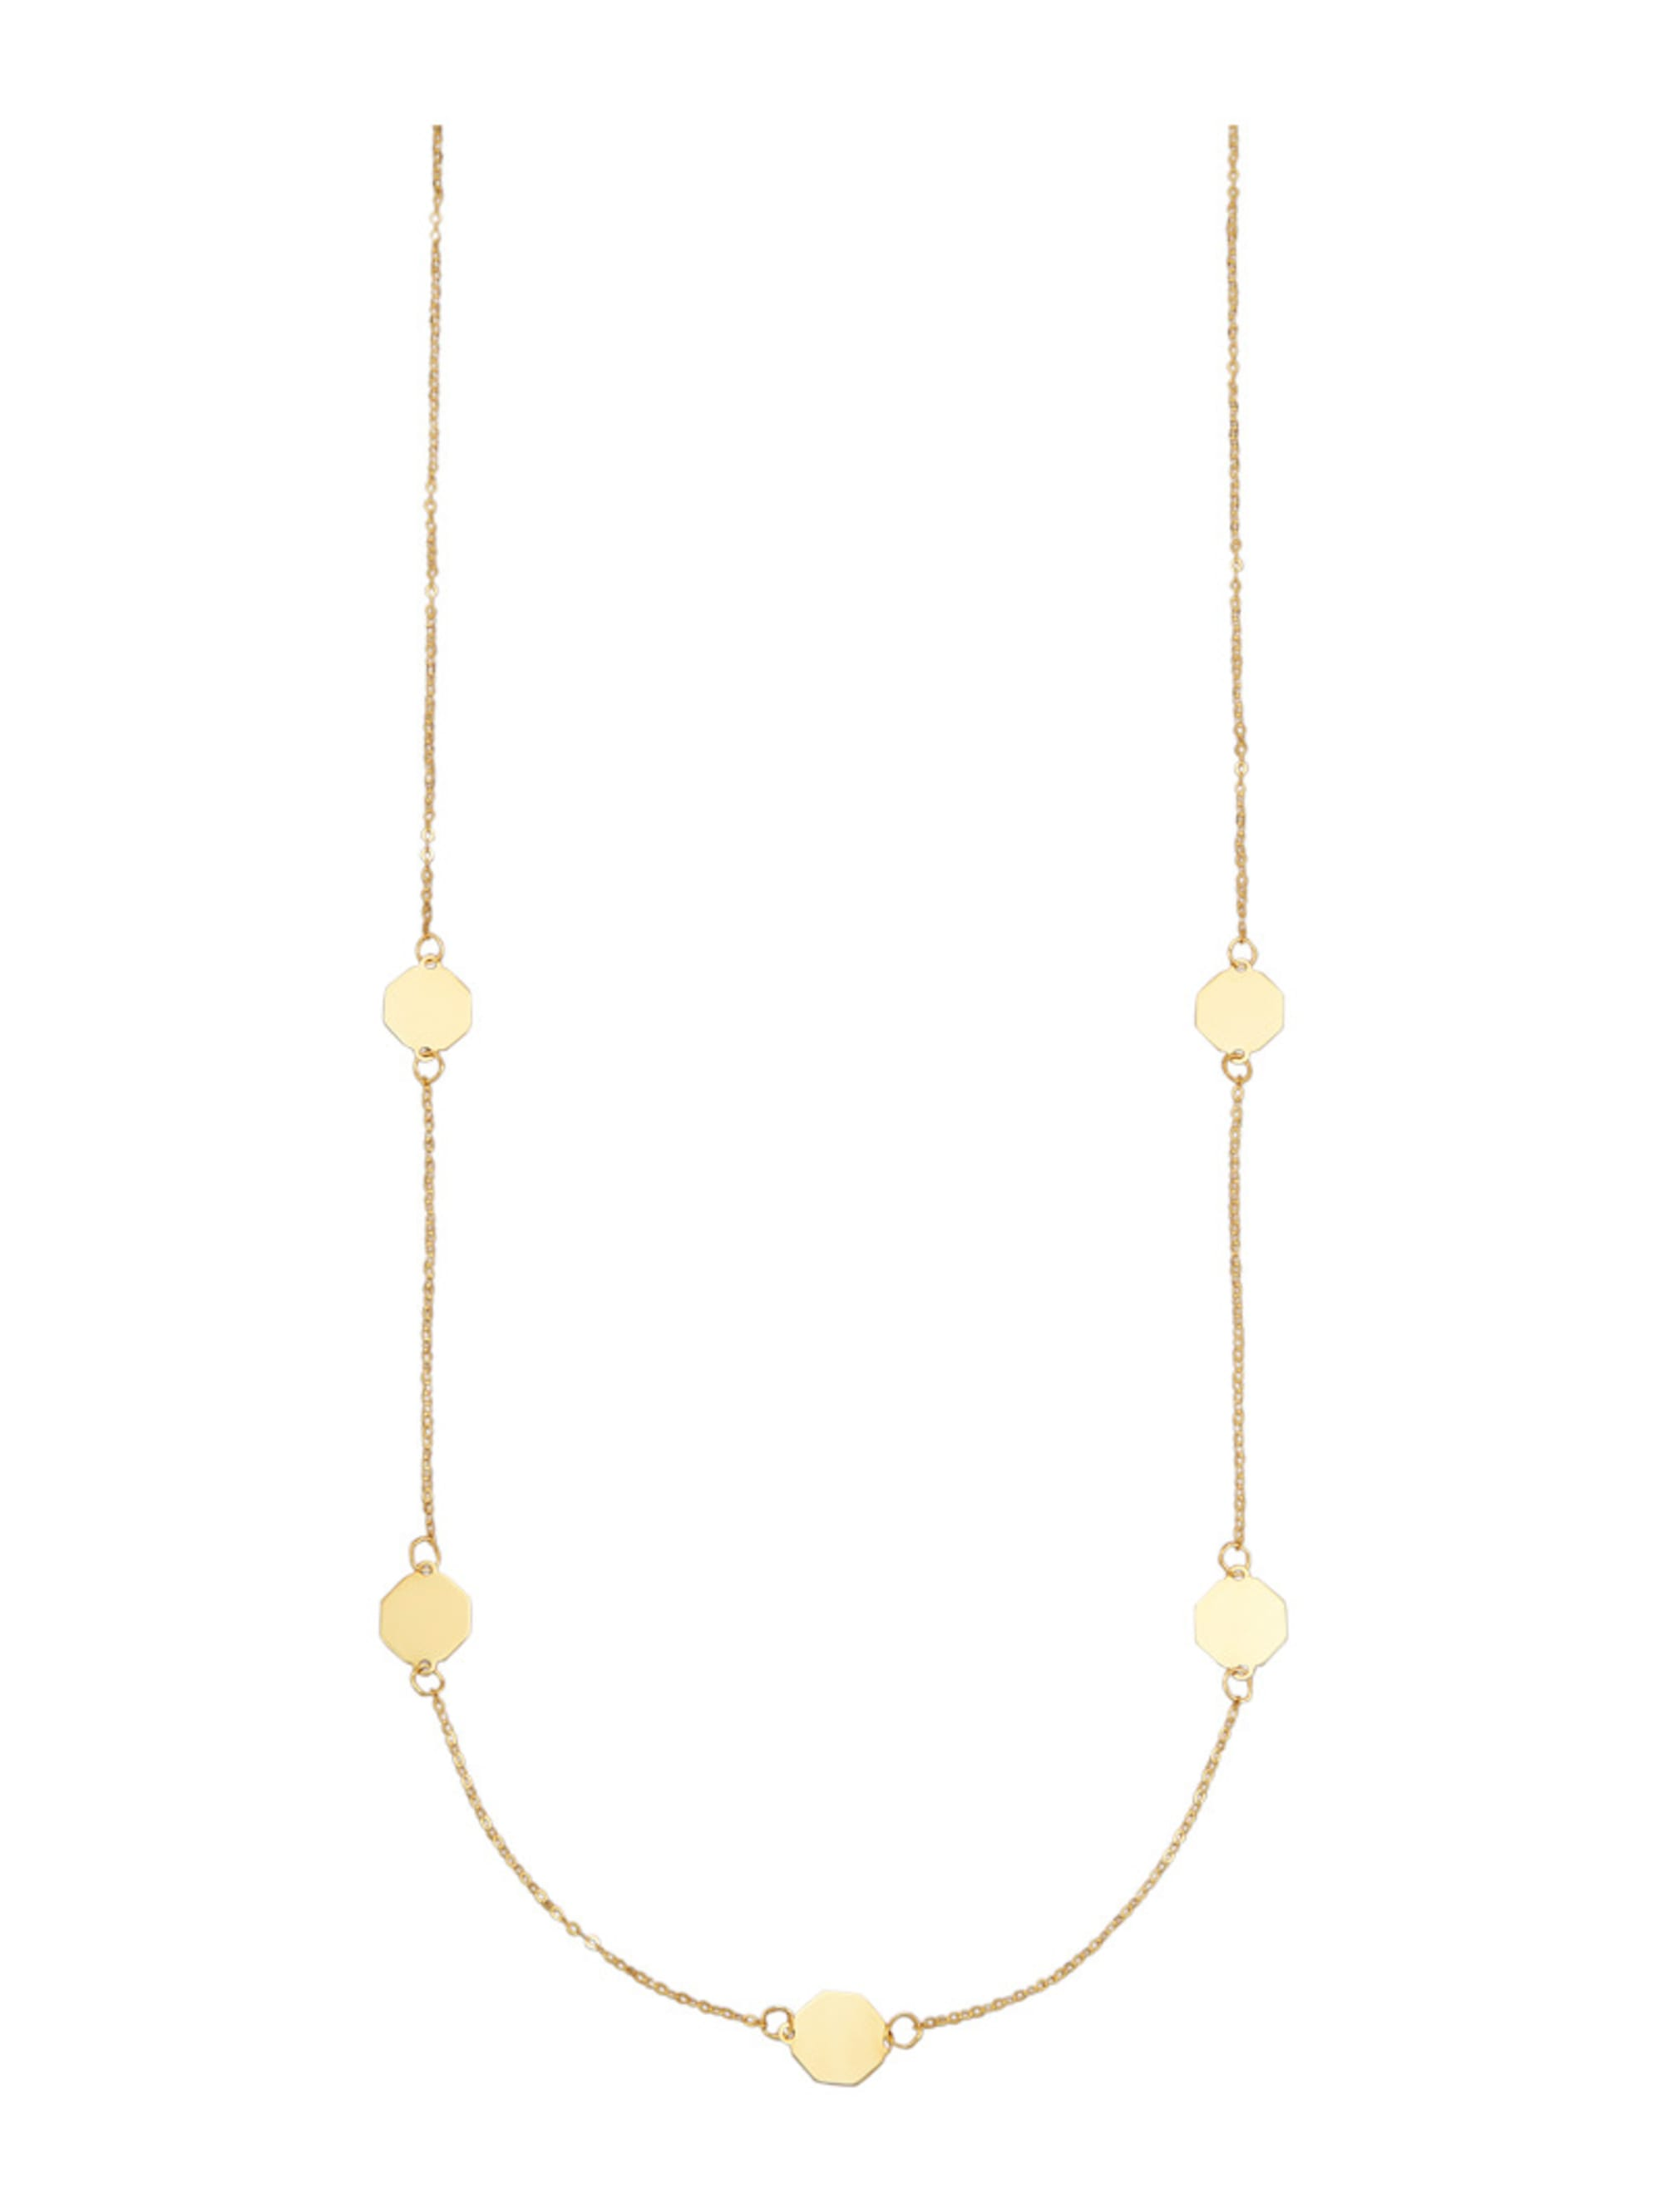 Collier in Gelbgold 375 v8upN